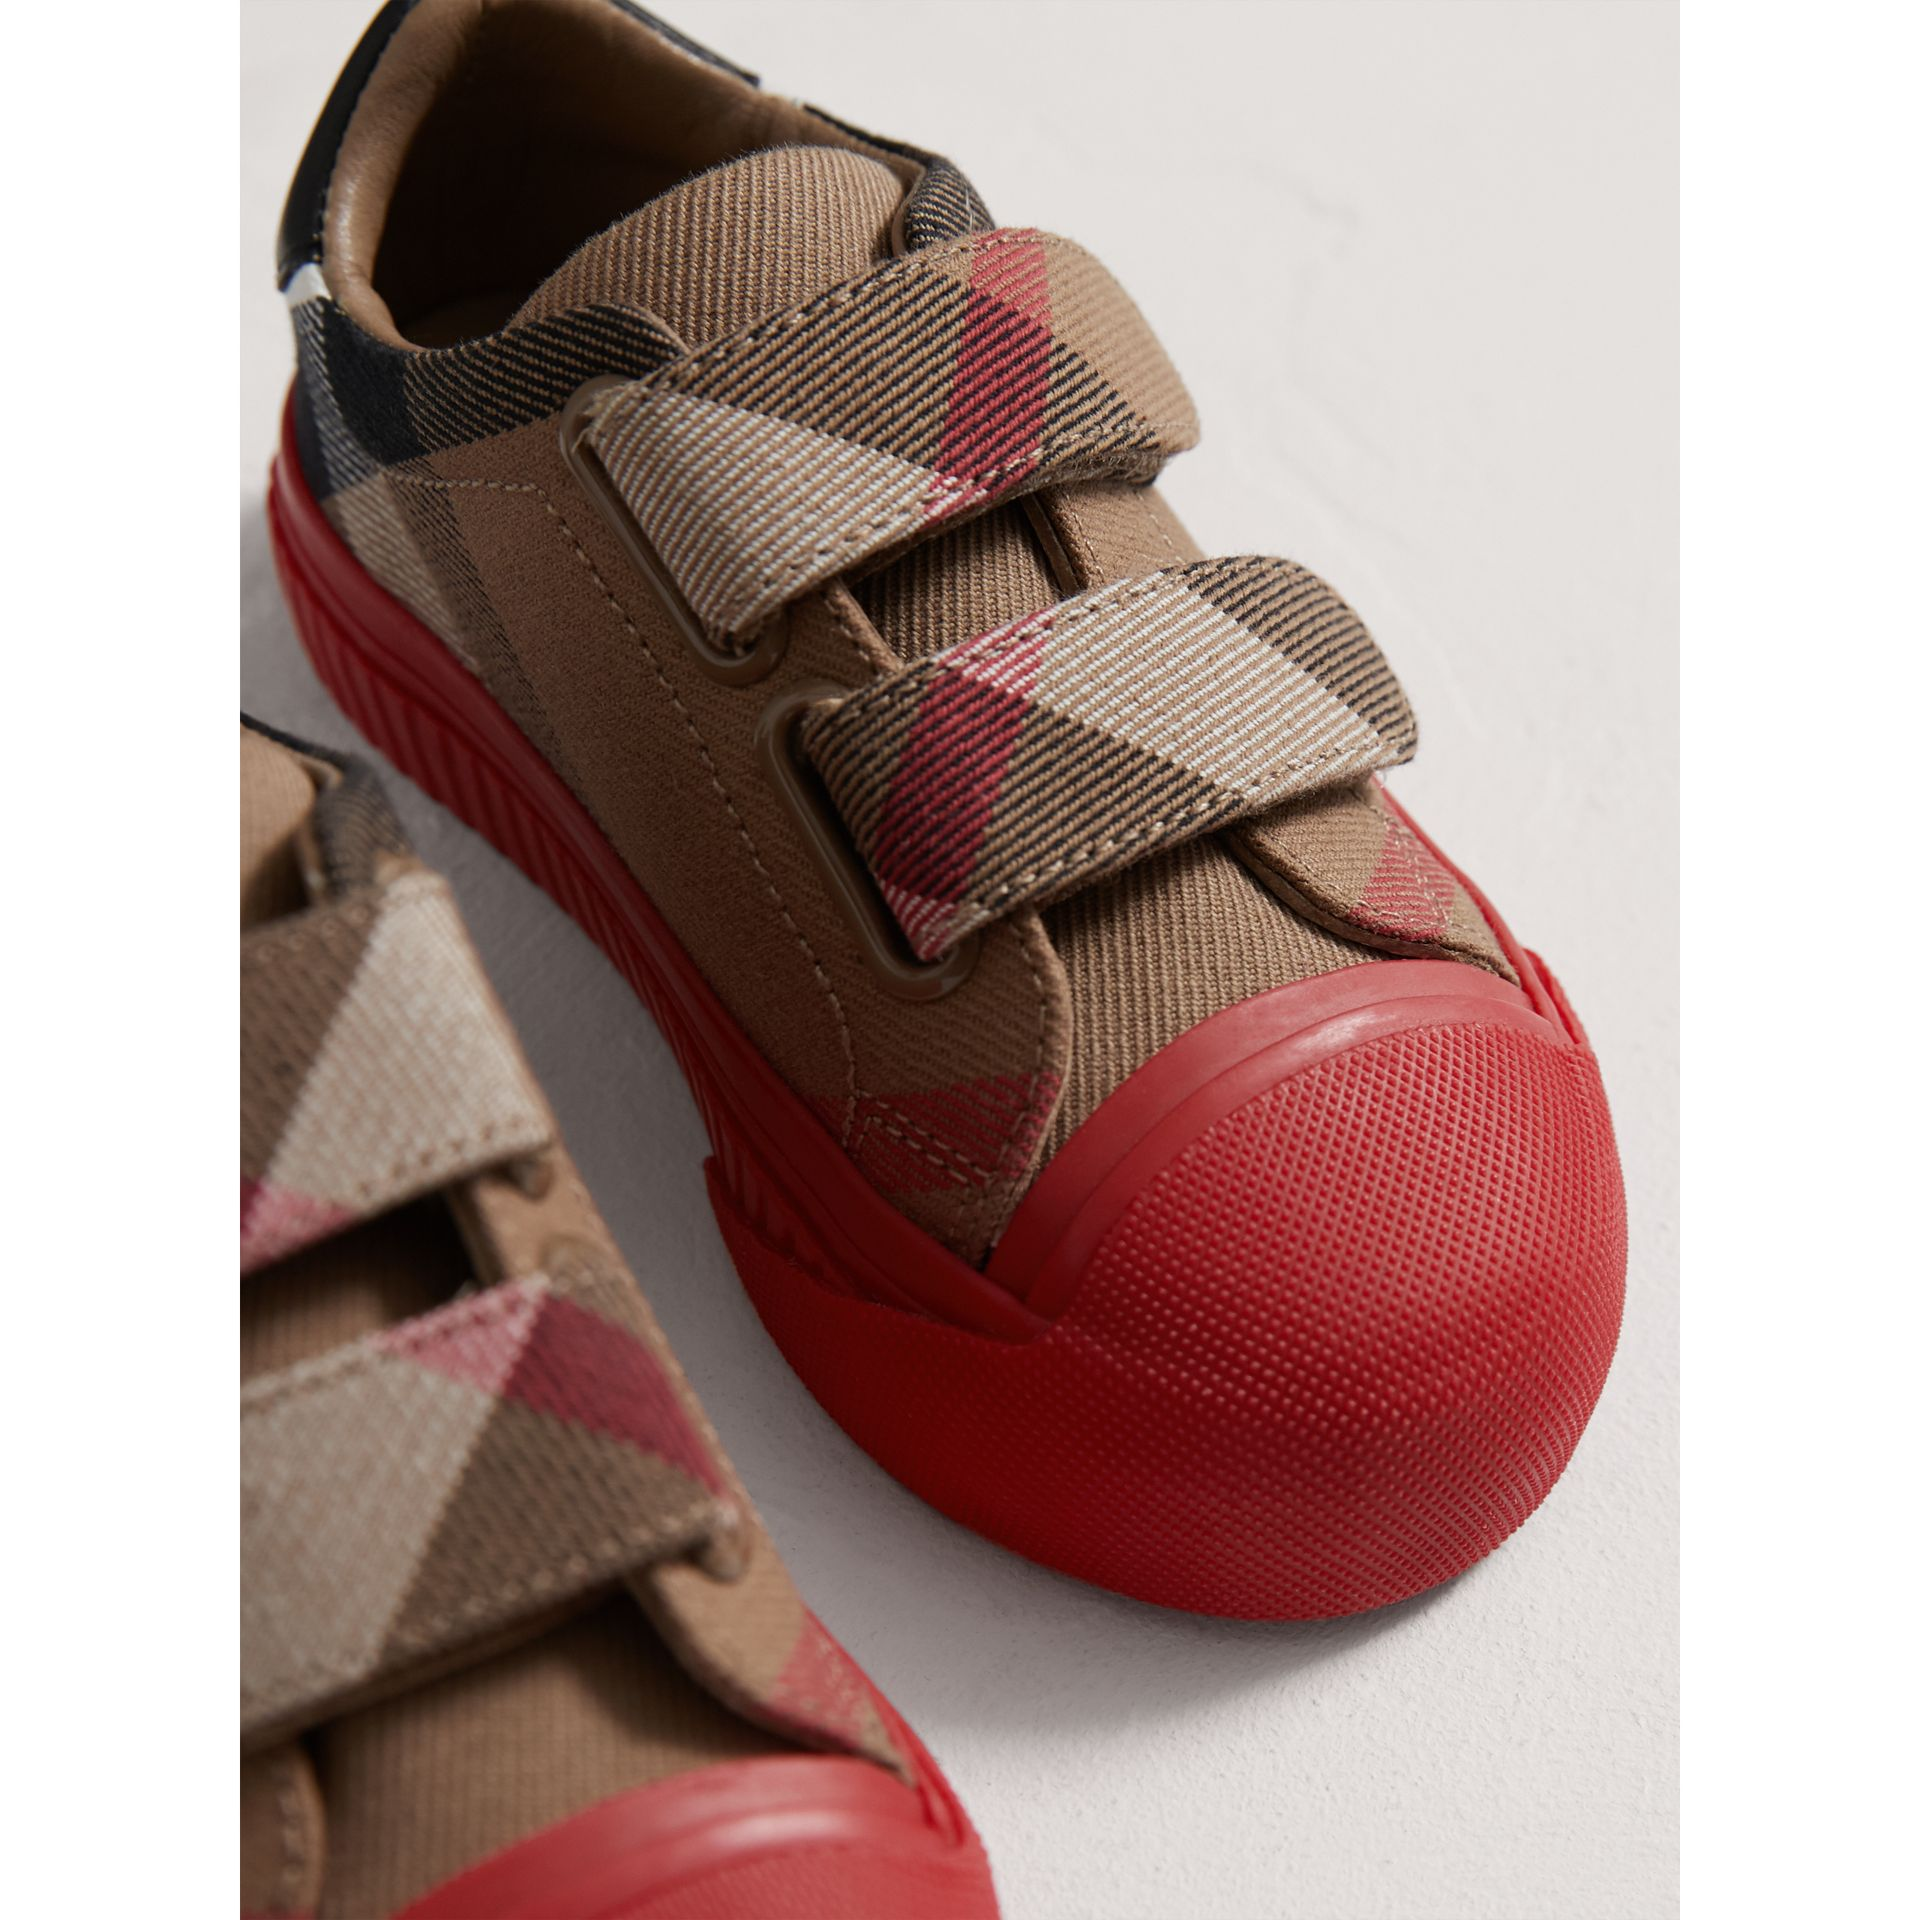 House Check and Leather Sneakers in Classic/parade Red | Burberry United States - gallery image 3